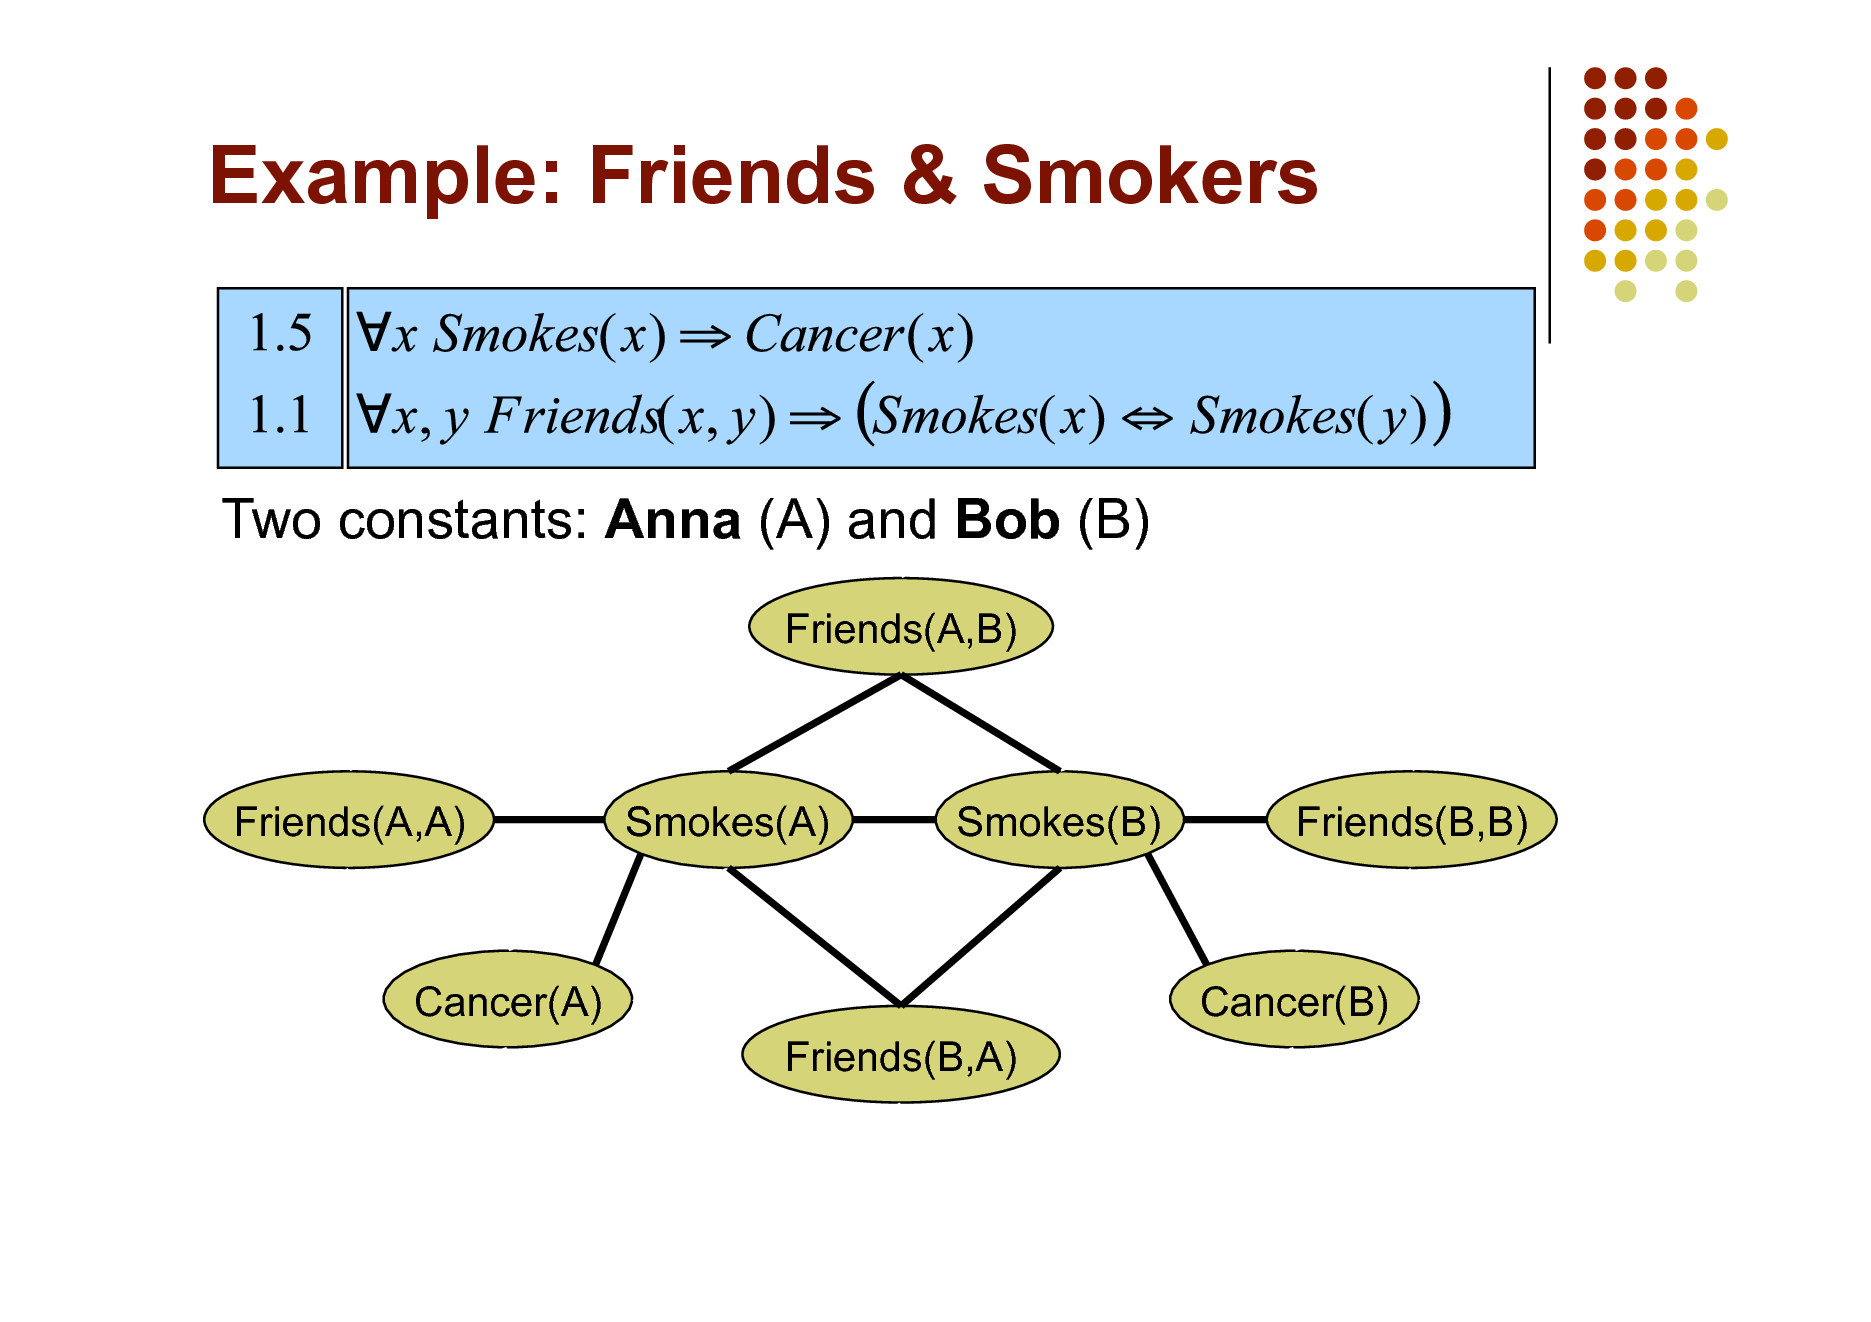 Slide: Example: Friends & Smokers  Two constants: Anna (A) and Bob (B) Friends(A,B)  Friends(A,A)  Smokes(A)  Smokes(B)  Friends(B,B)  Cancer(A) Friends(B,A)  Cancer(B)